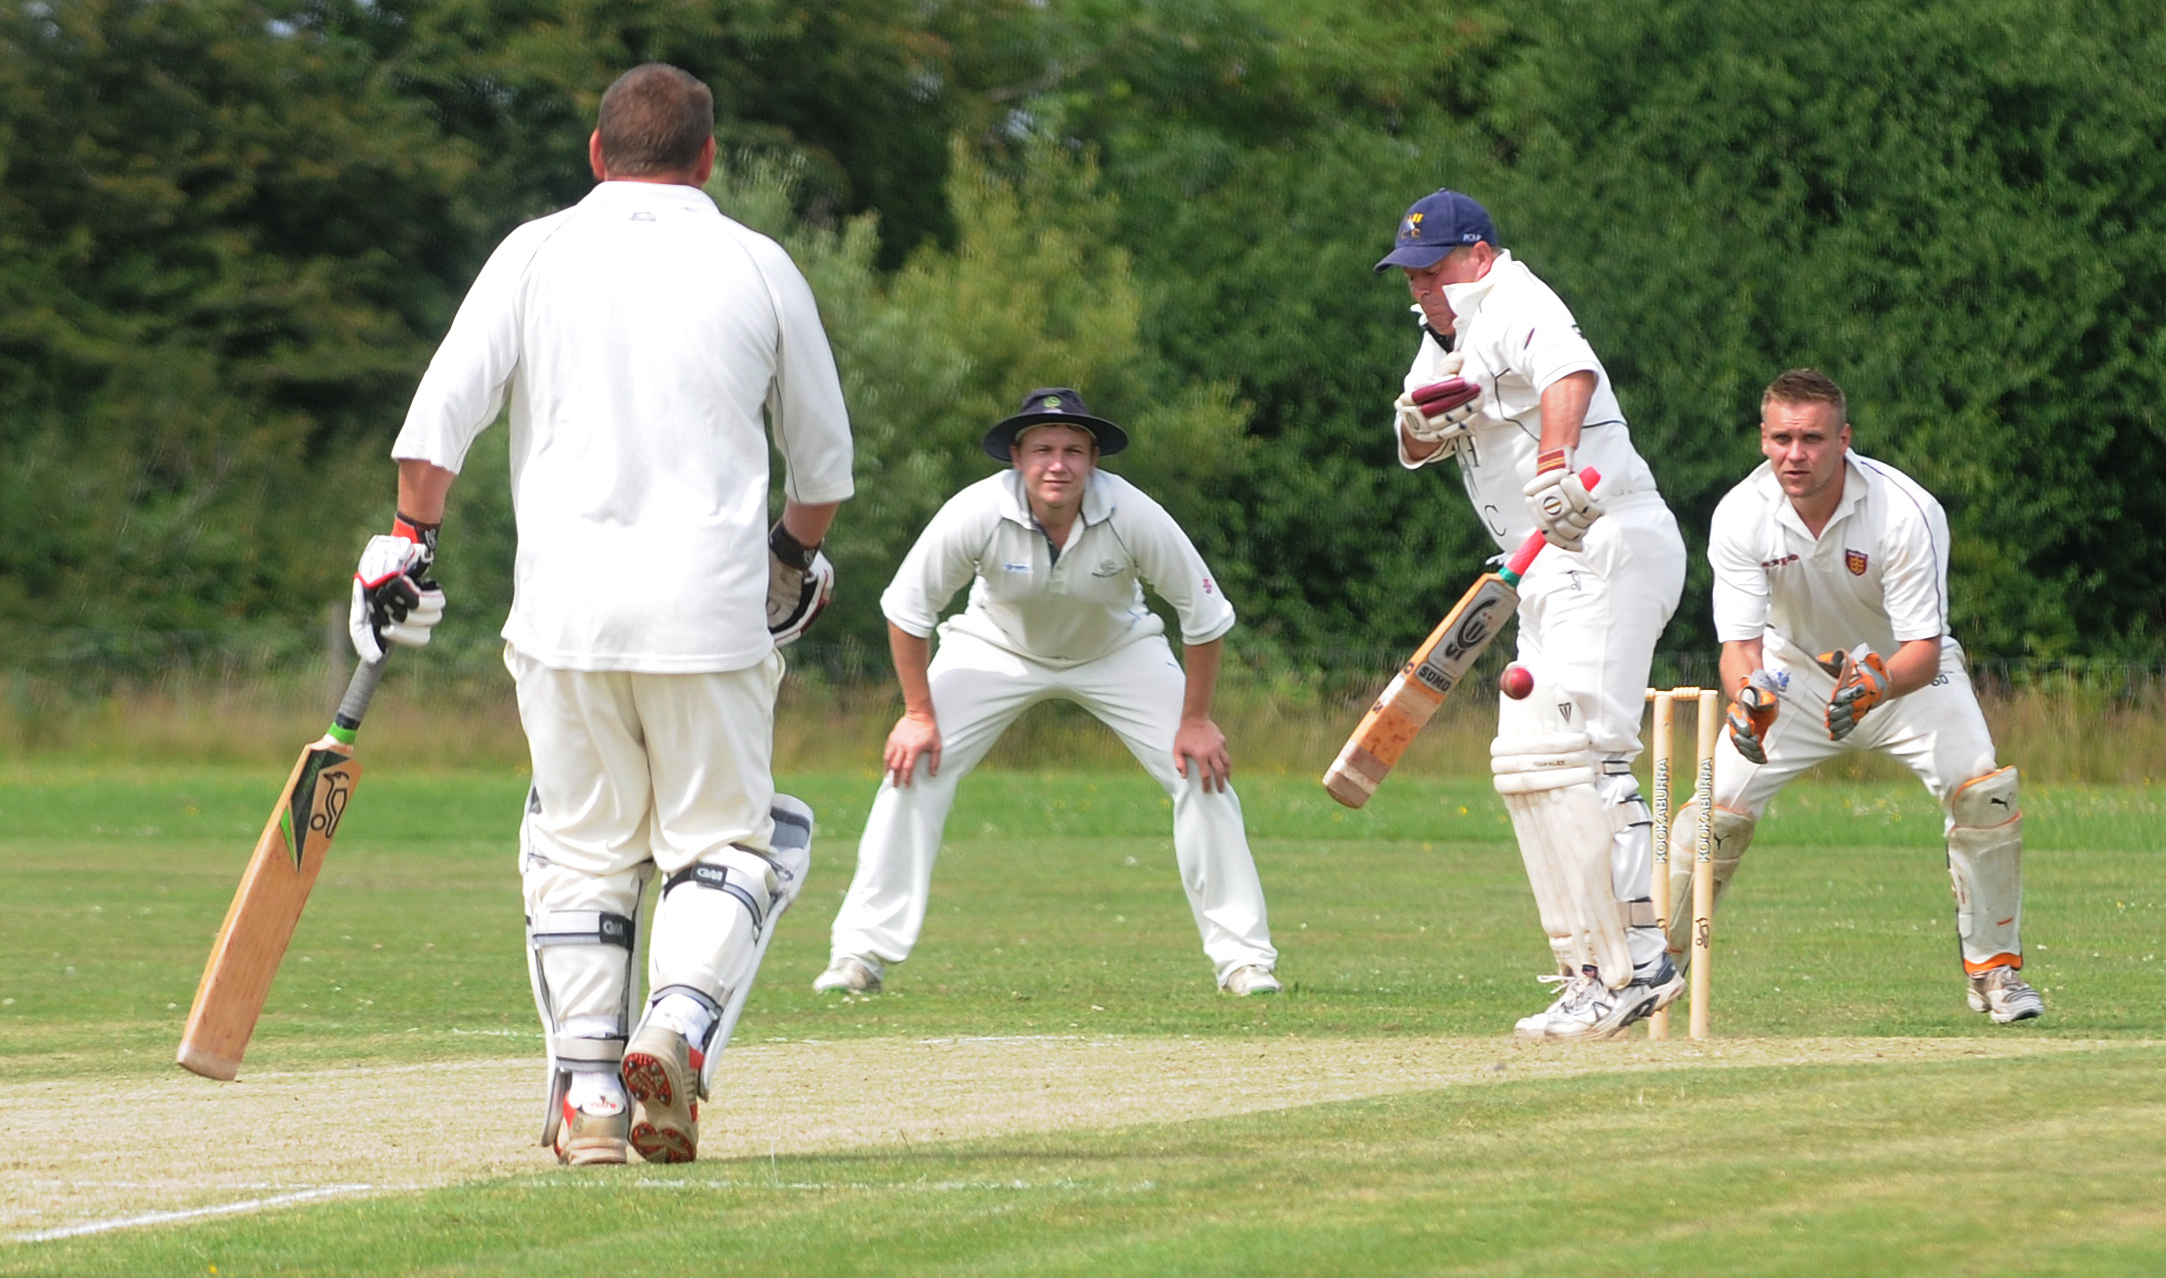 A close call for Stockton & Hopgrove batsman Steve Fraser off the bowling of North Cave's Karl Youngman